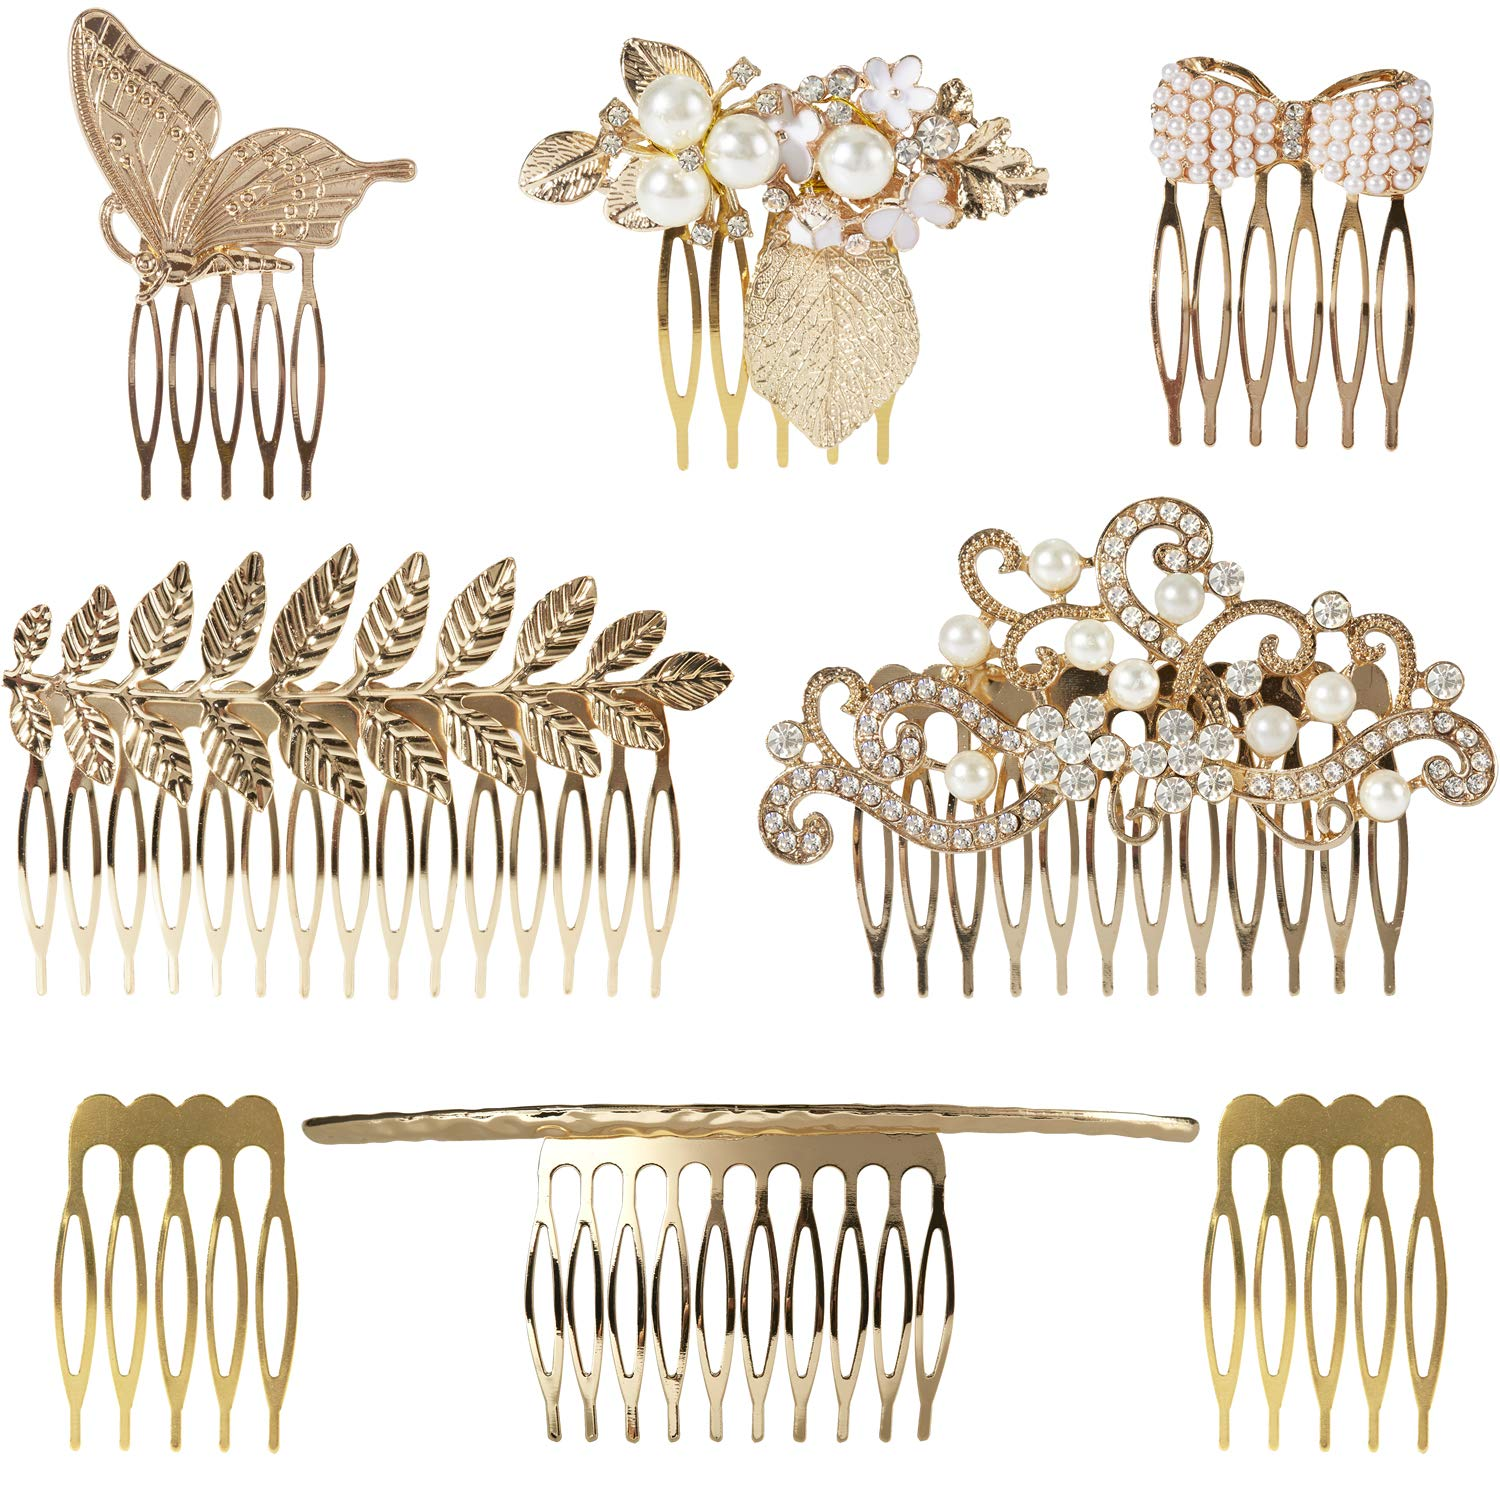 8 Pack Large Gold Crystal Pearl Rhinestone Metal Hair Side Combs Clip With Teeth Grip Clasp Barrettes Pins for Women Bridal Wedding Veil Decorative Headpiece French Twist Updo Vintage Accessories by Angla